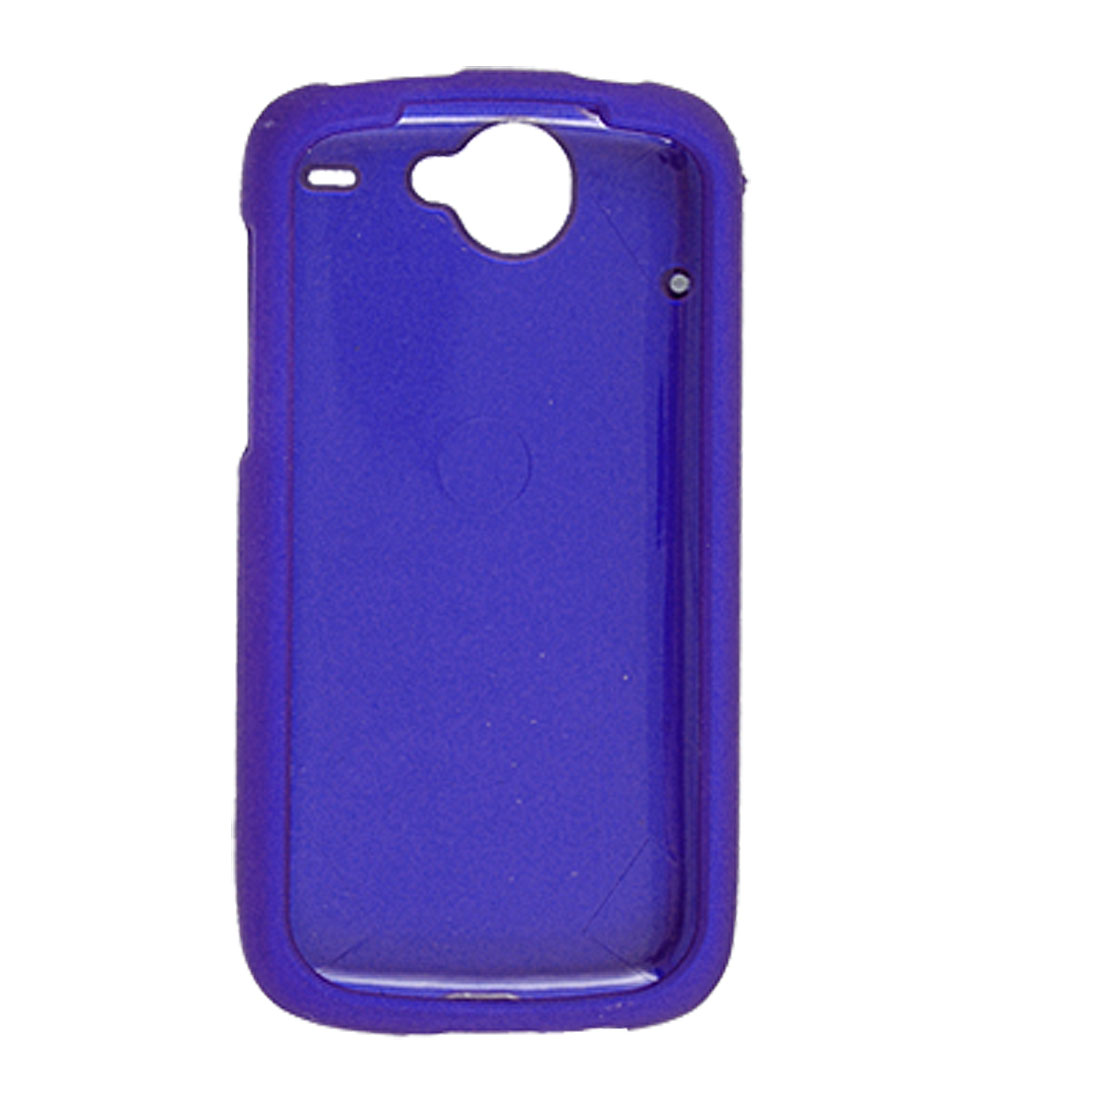 Blue Heart Rubberized Hard Plastic Case Cover for Google Nexus One